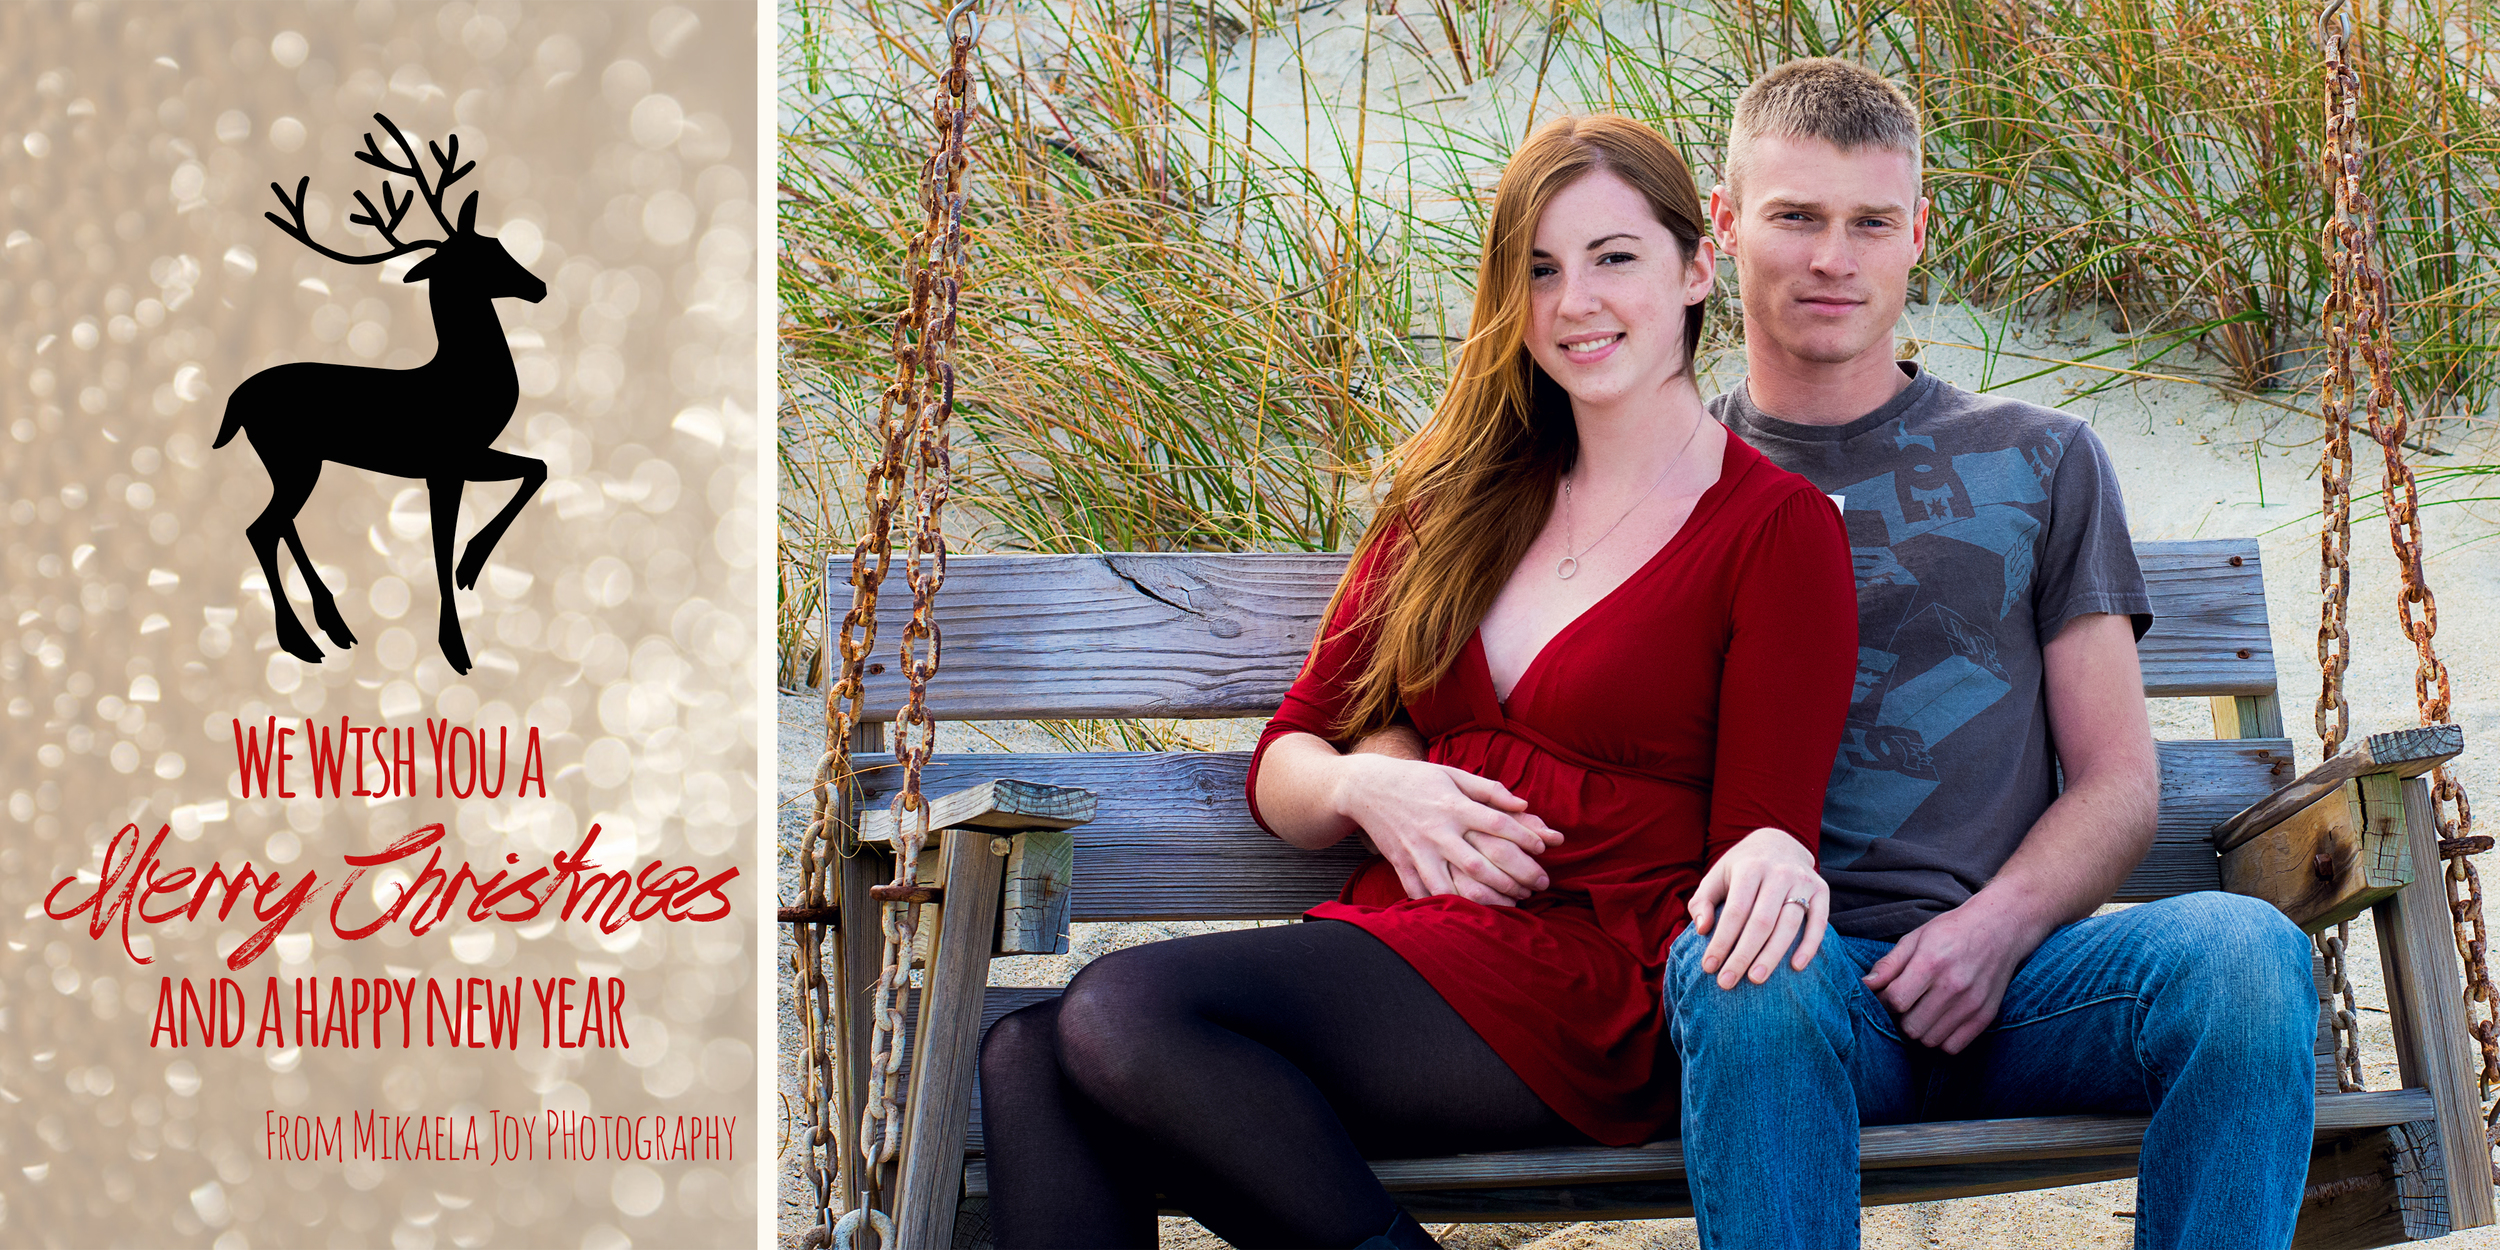 Merry Christmas from Mikaela Joy Photography!